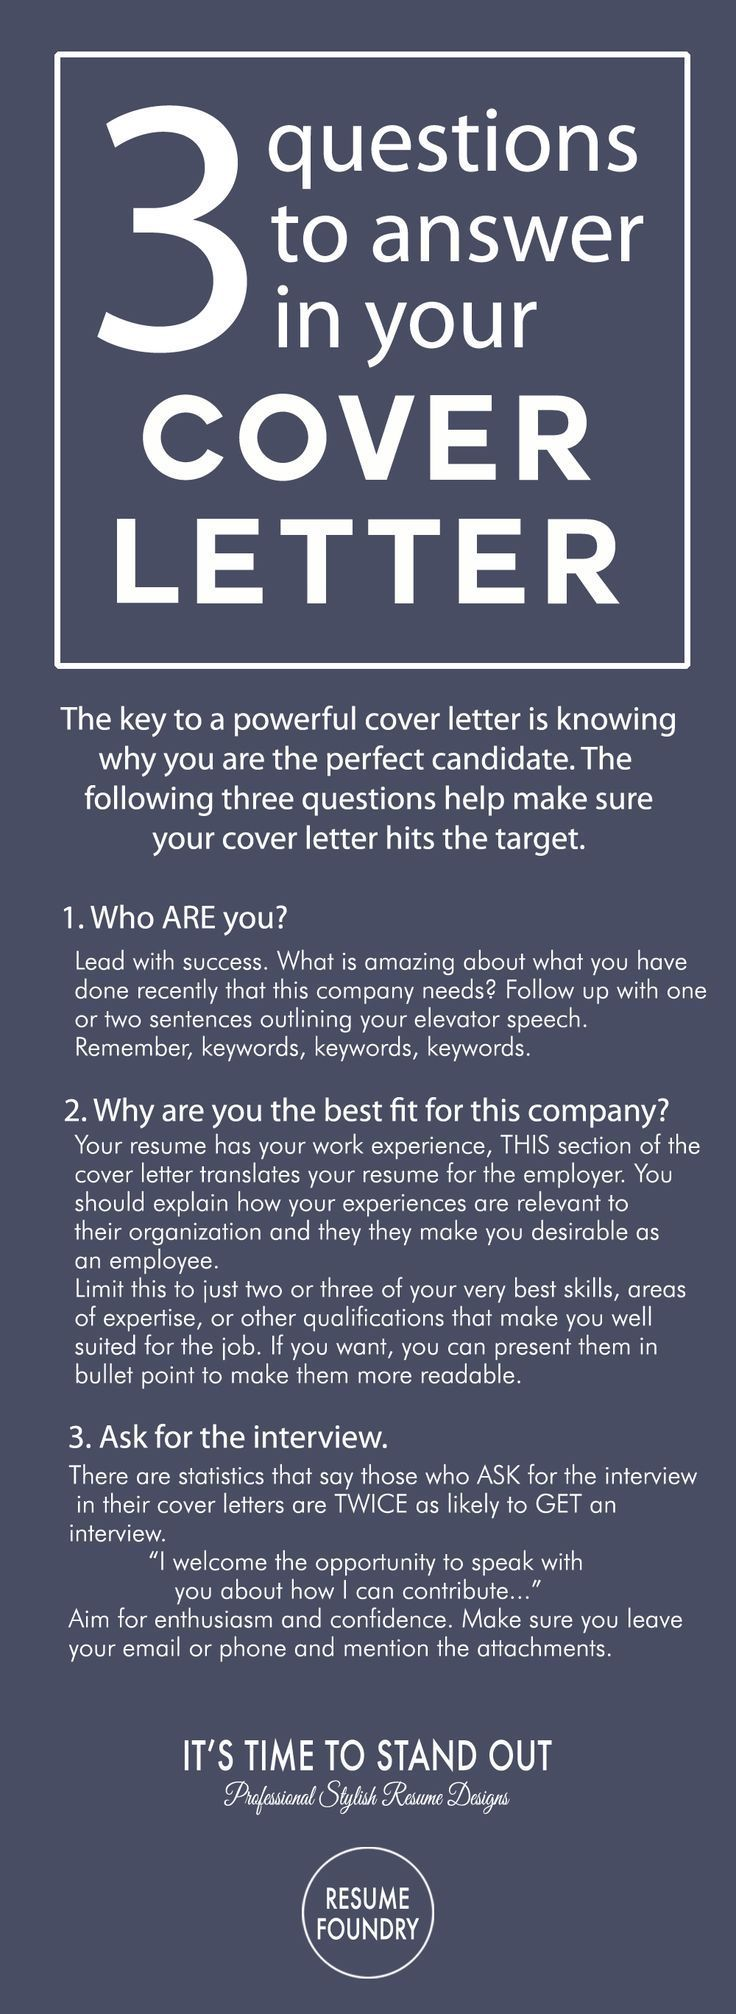 cover letter tips outline how to write a cover letter - How To Create A Resume And Cover Letter